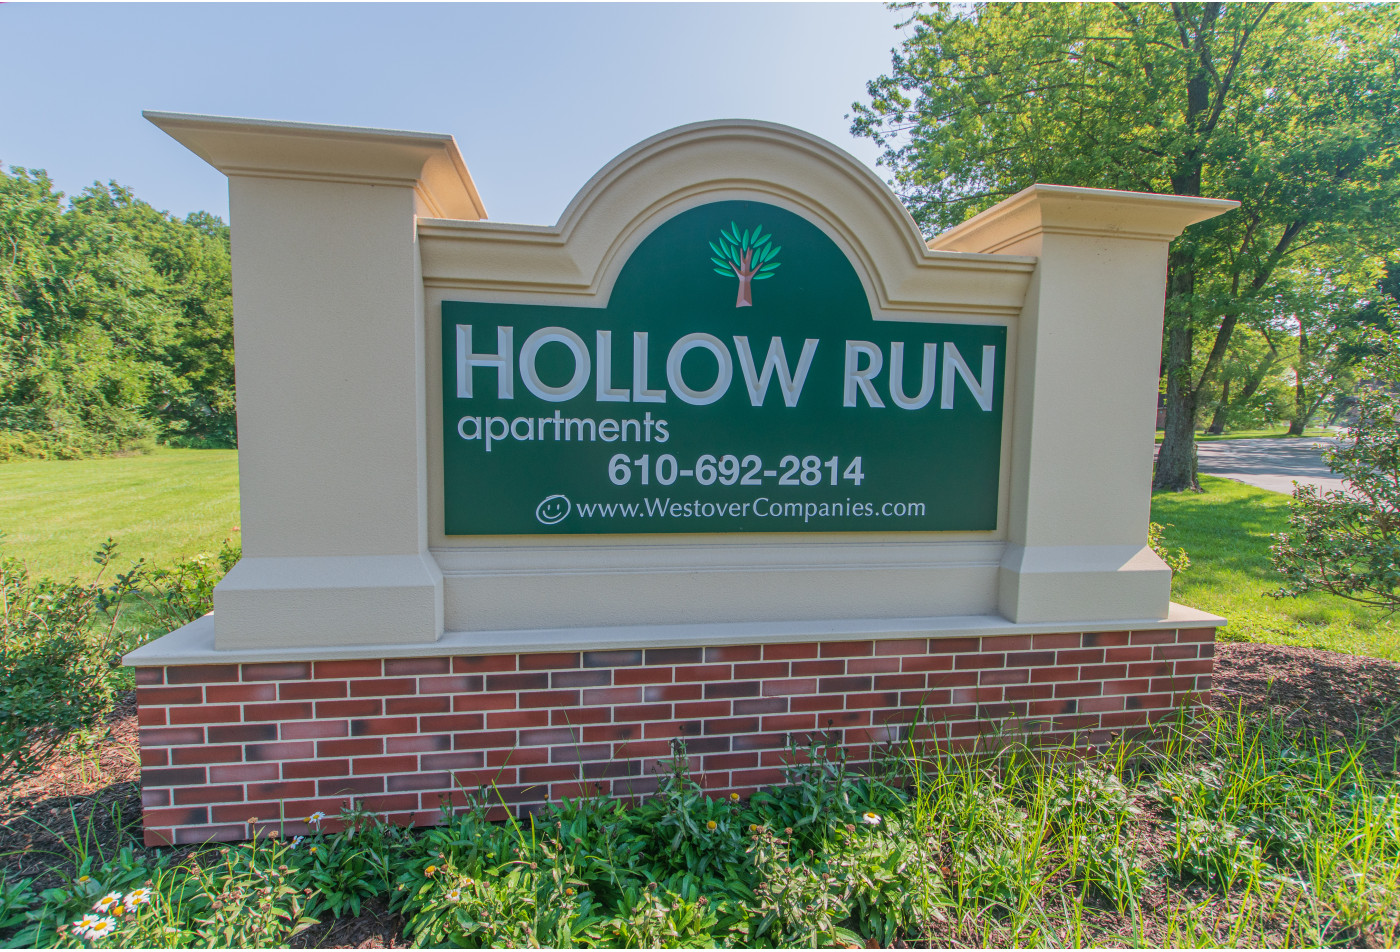 Apartments For Rent In West Chester | Hollow Run Apartments